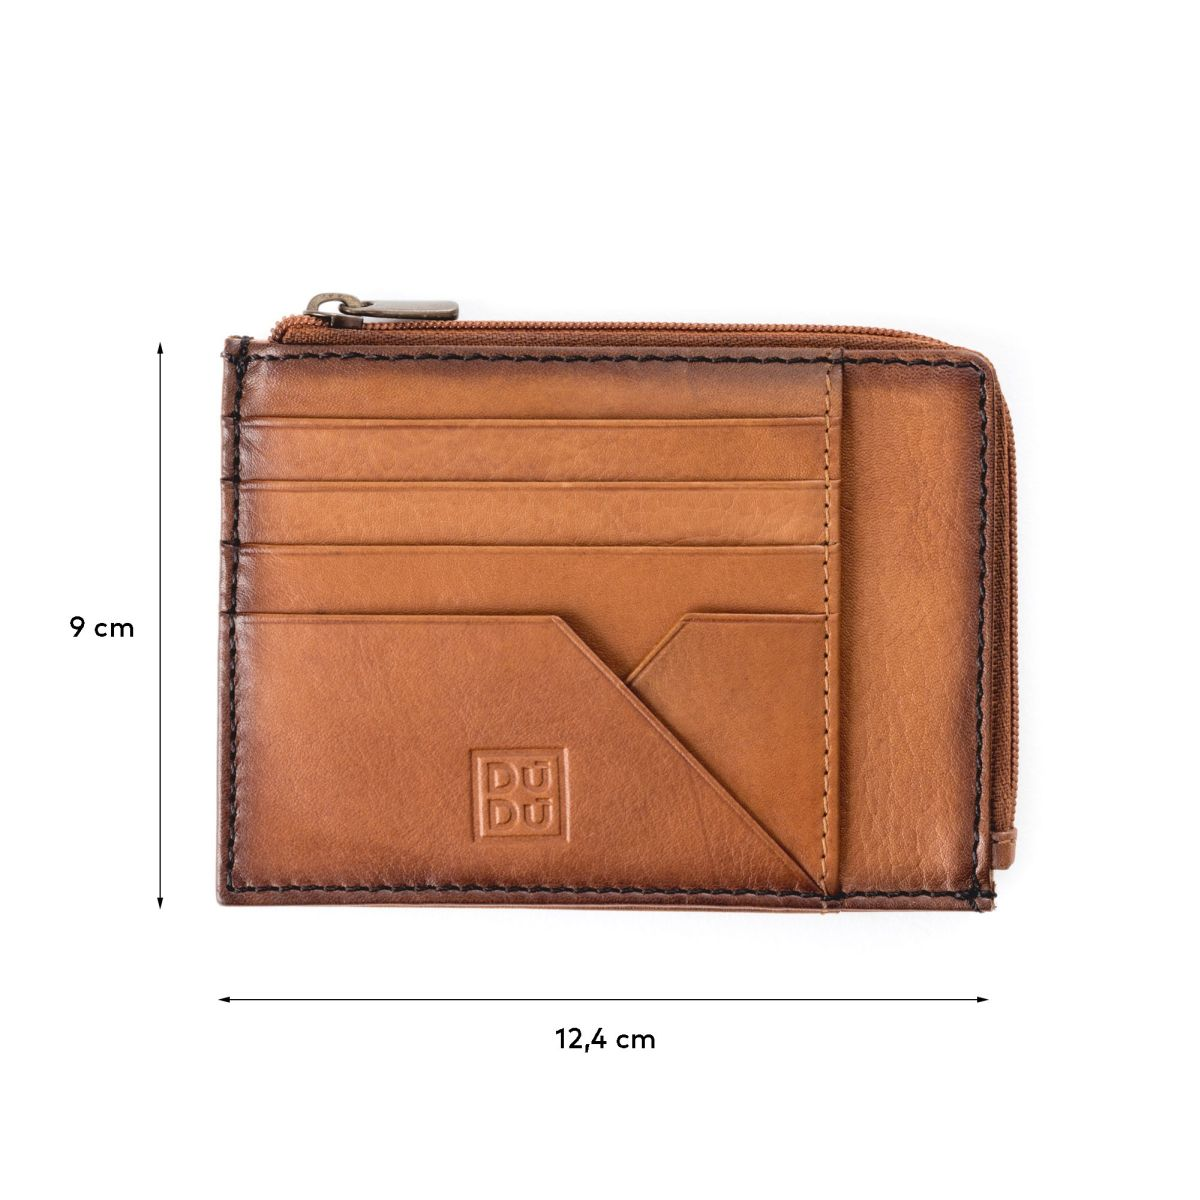 DuDu Flat Leather Wallet - Light Brown